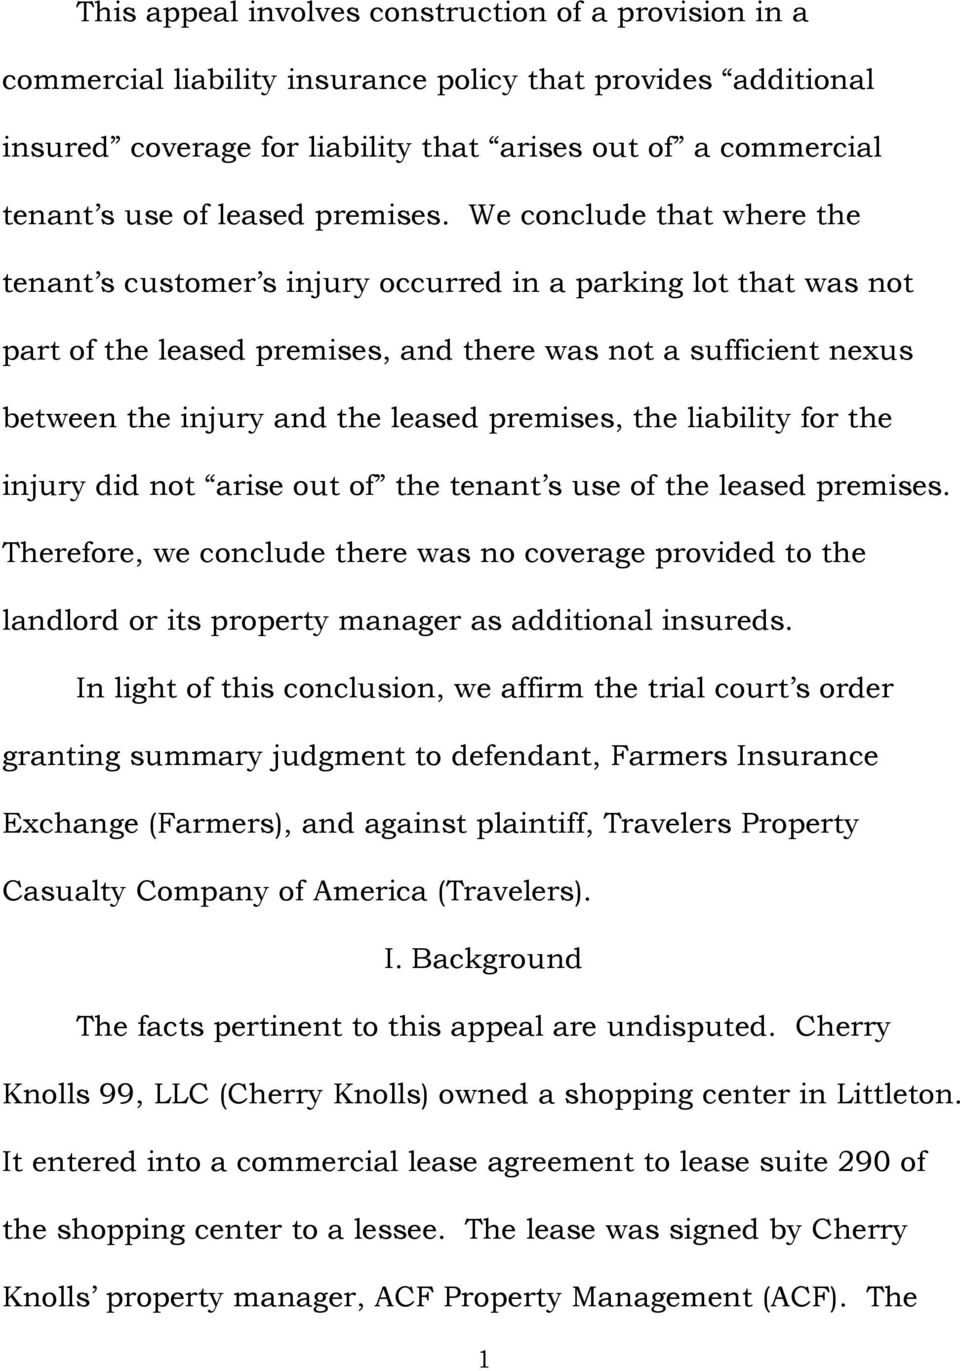 We conclude that where the tenant s customer s injury occurred in a parking lot that was not part of the leased premises, and there was not a sufficient nexus between the injury and the leased